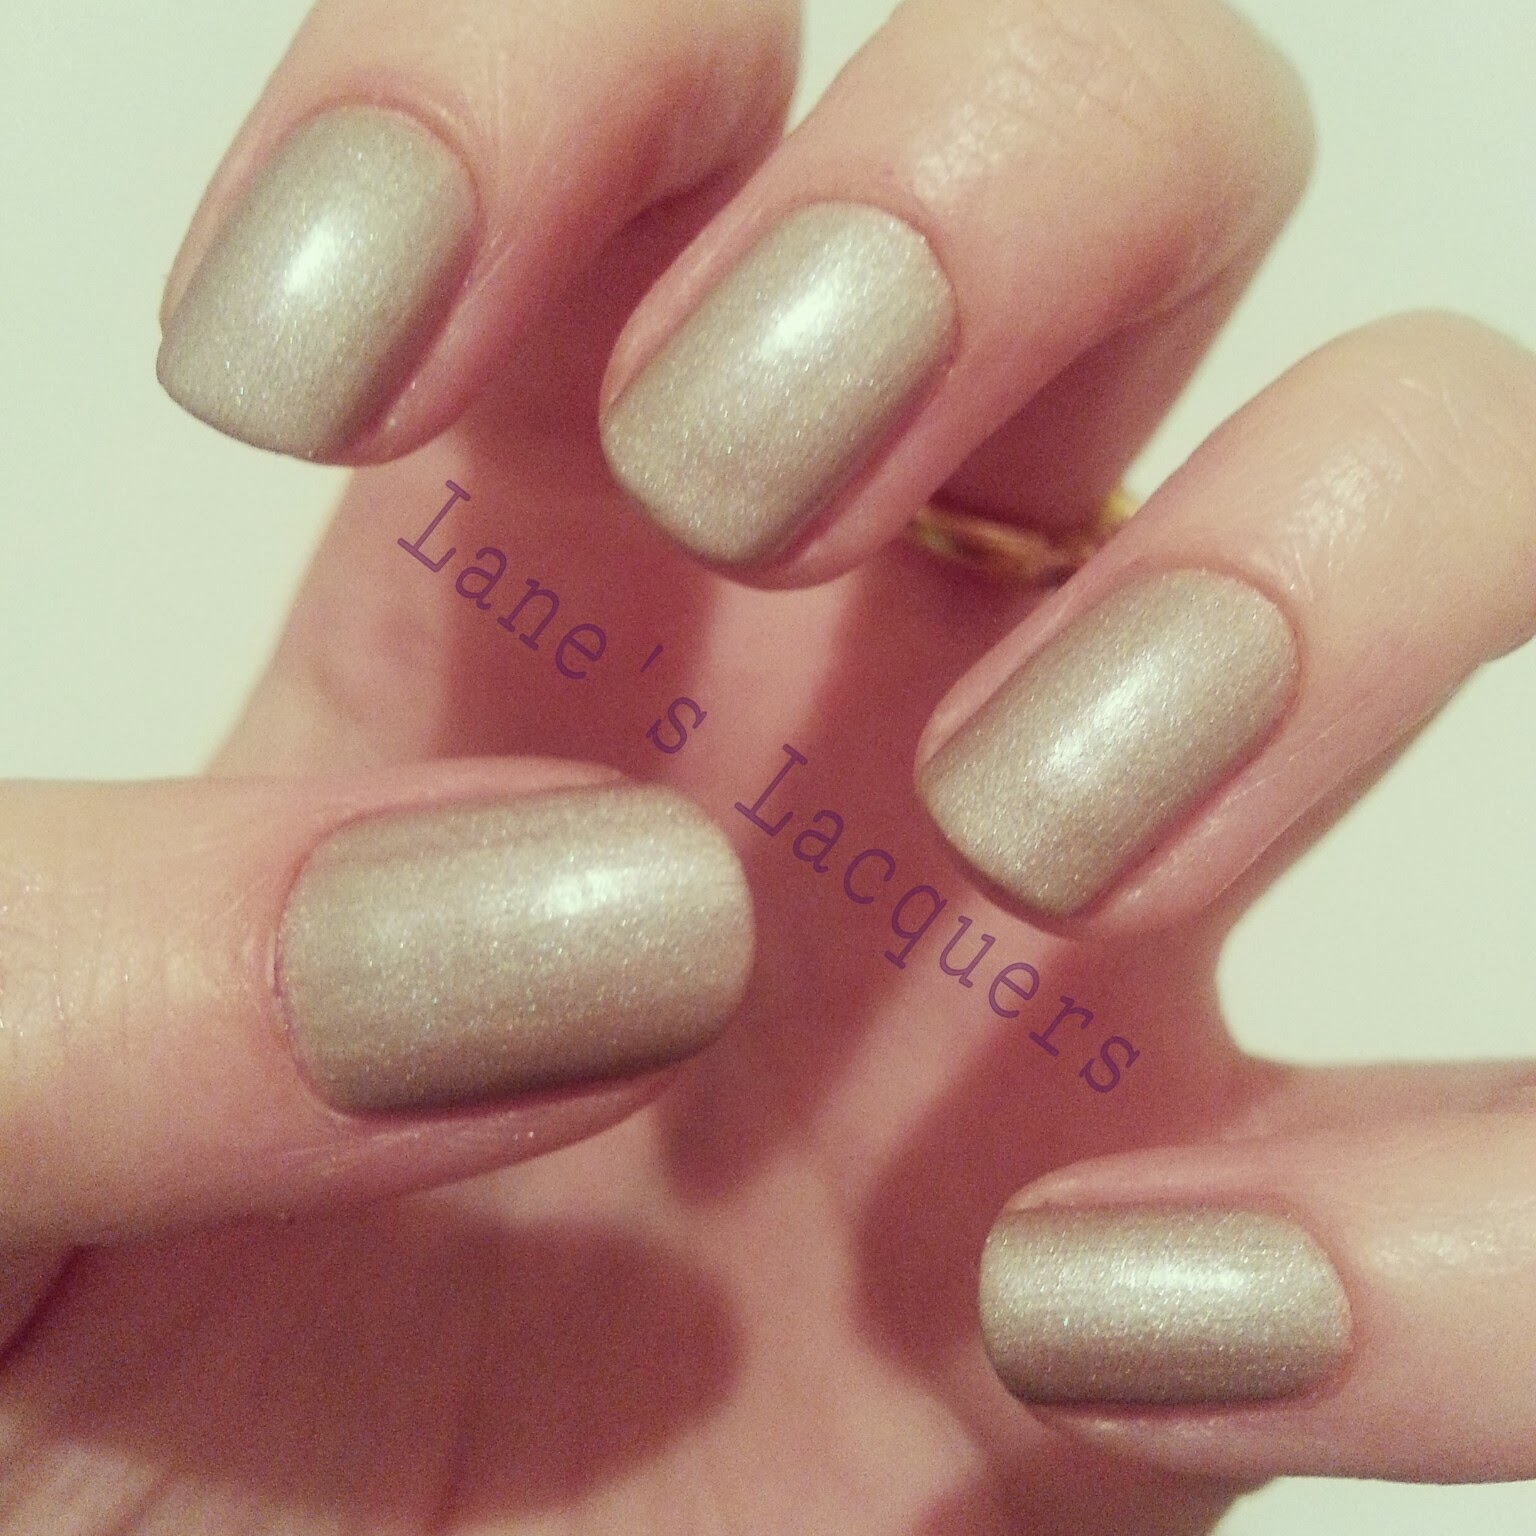 barry-m-silk-truffle-swatch-manicure